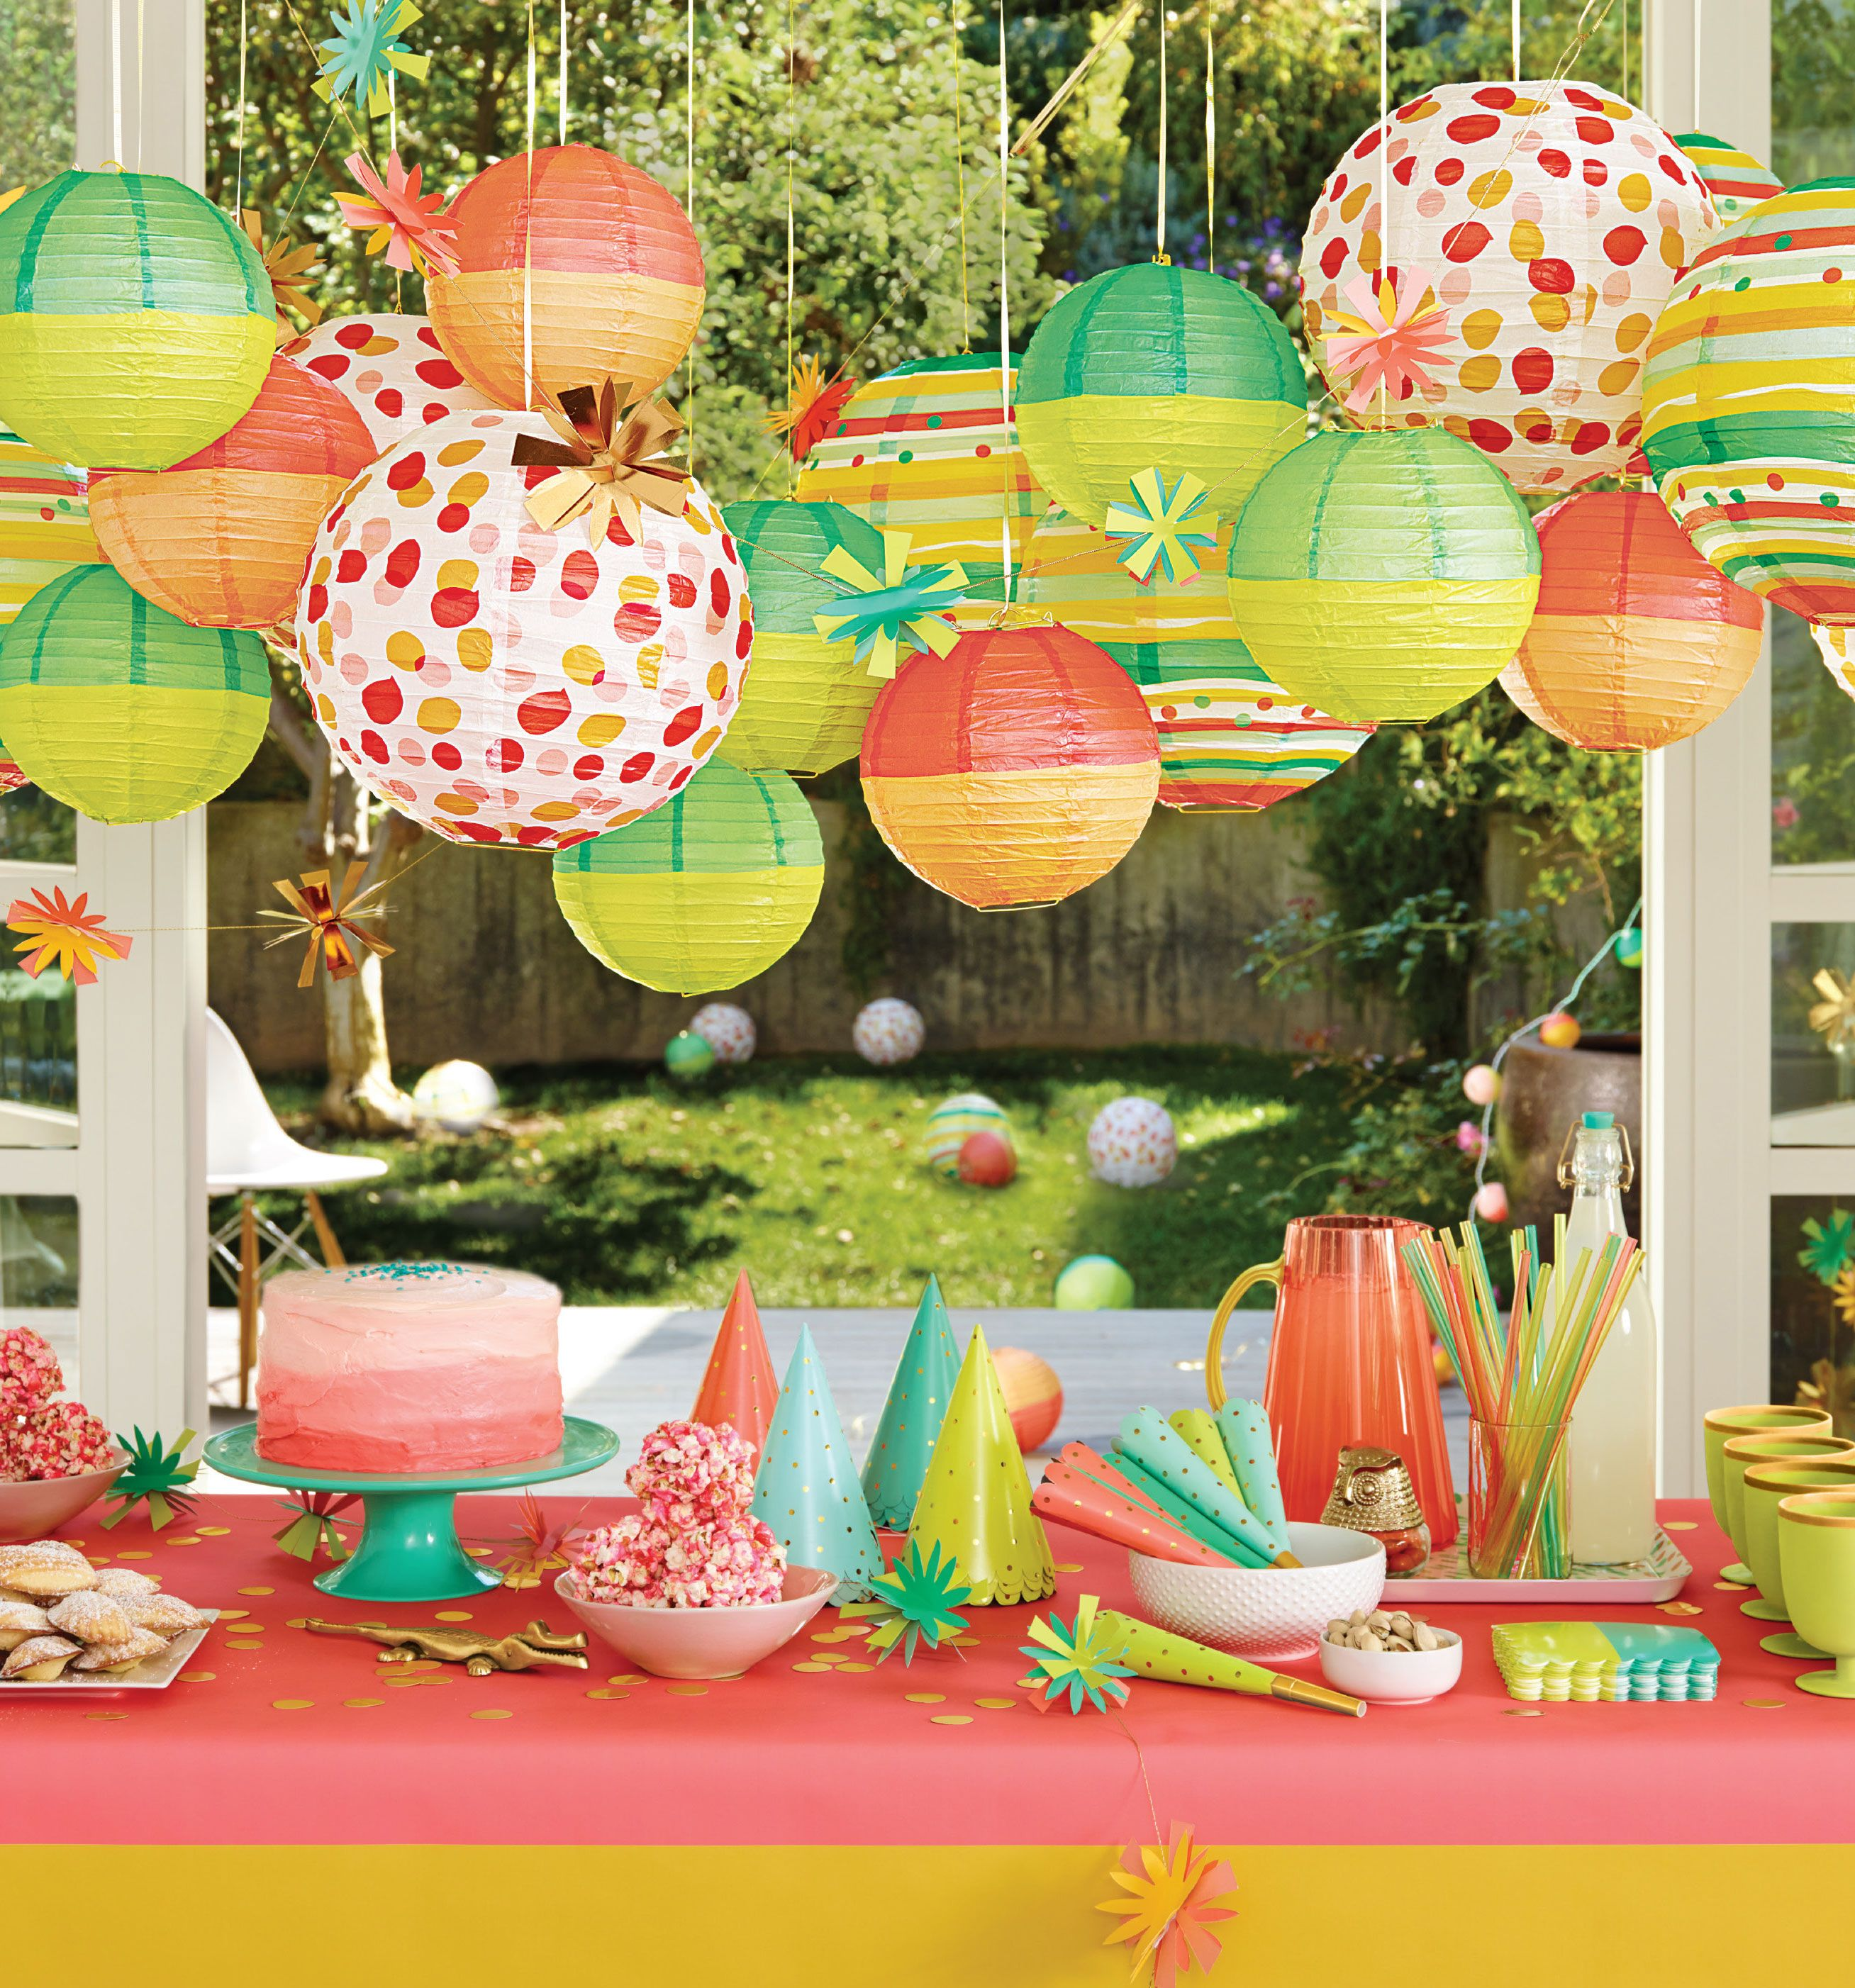 From Pinterest to Partying: Target Taps Top Pinners as Latest Design ...